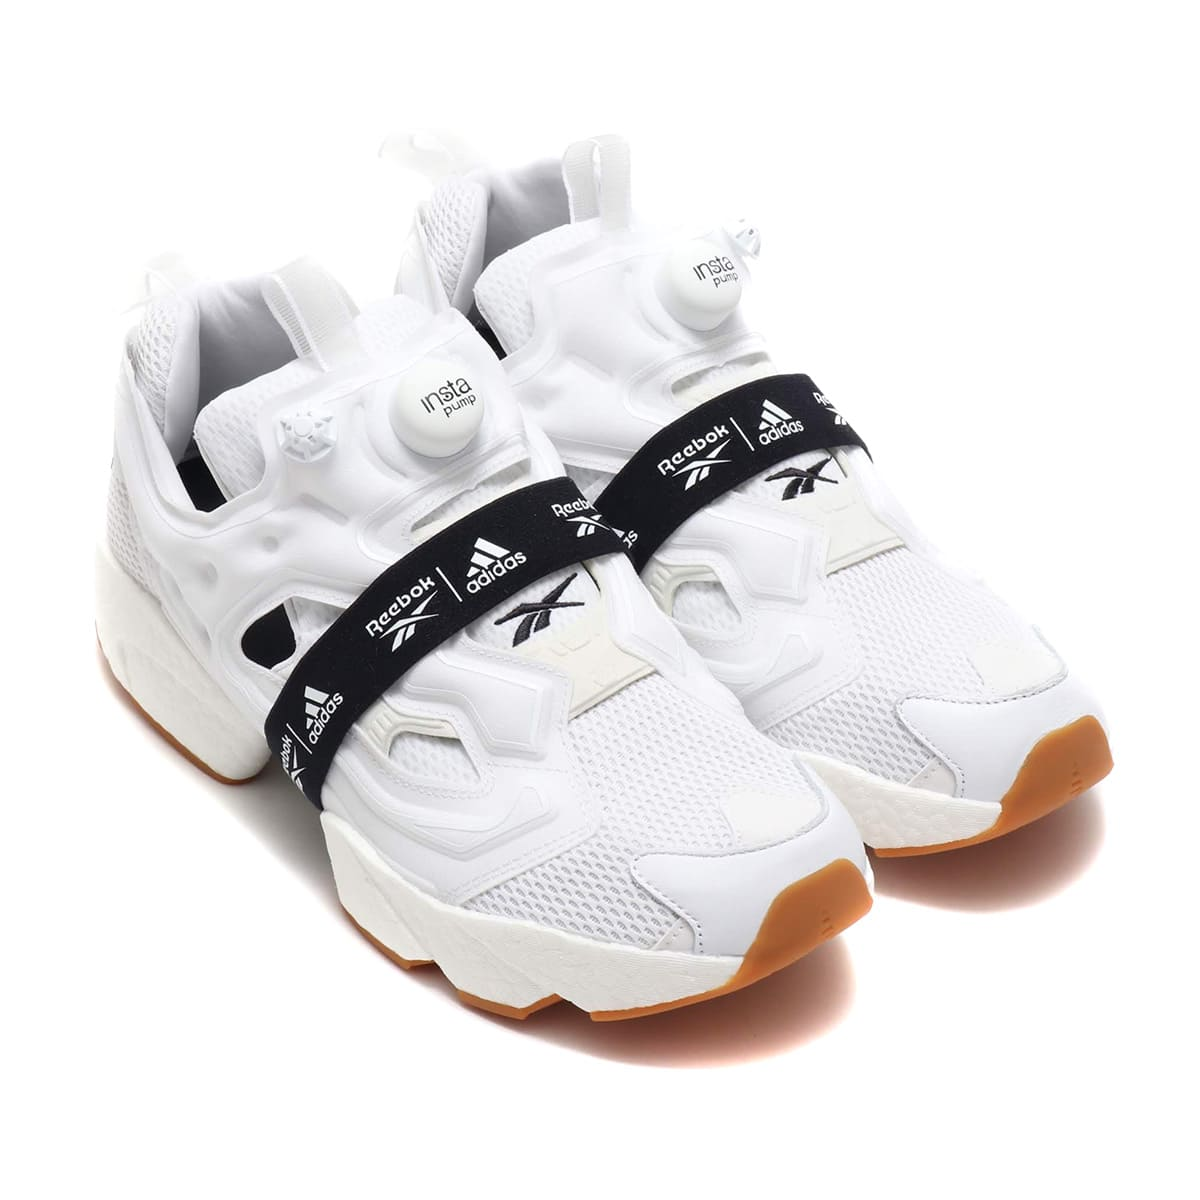 Reebok INSTAPUMP FURY BOOST WHITE/BLACK/REEBOK RUBBER GUM 19FW-S_photo_large